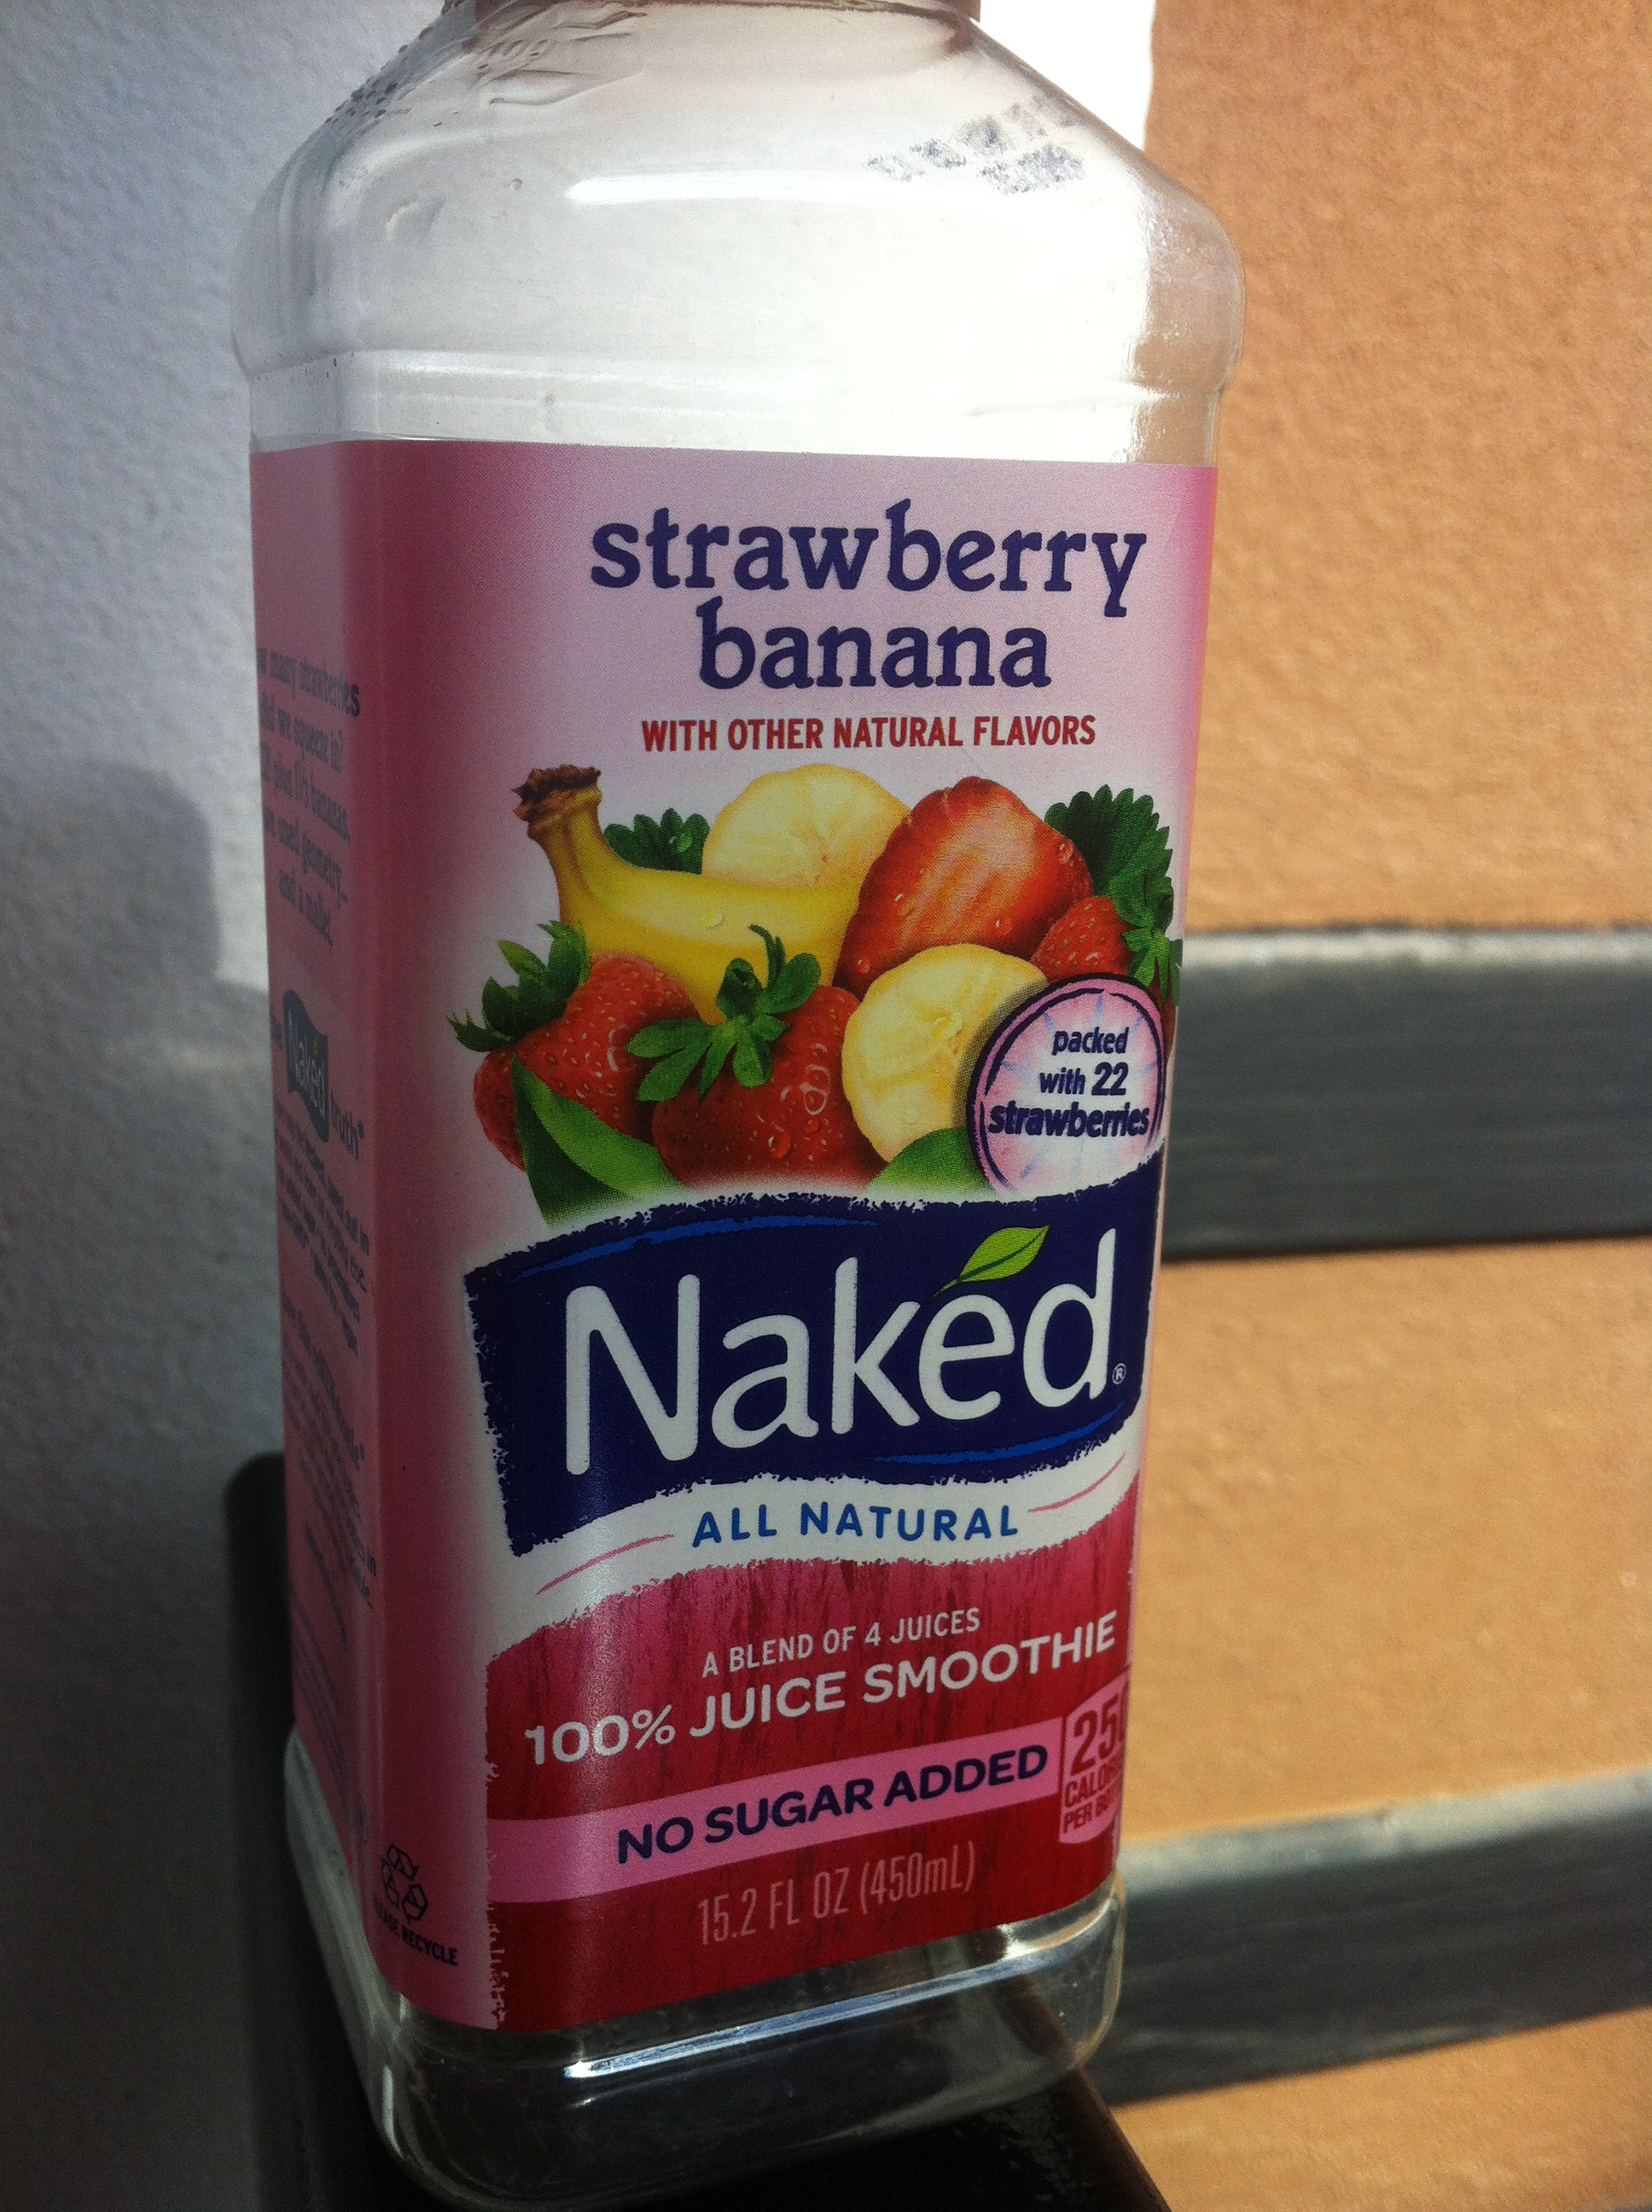 Naked Juice Strawberry Banana, Digital Marketing Transparency